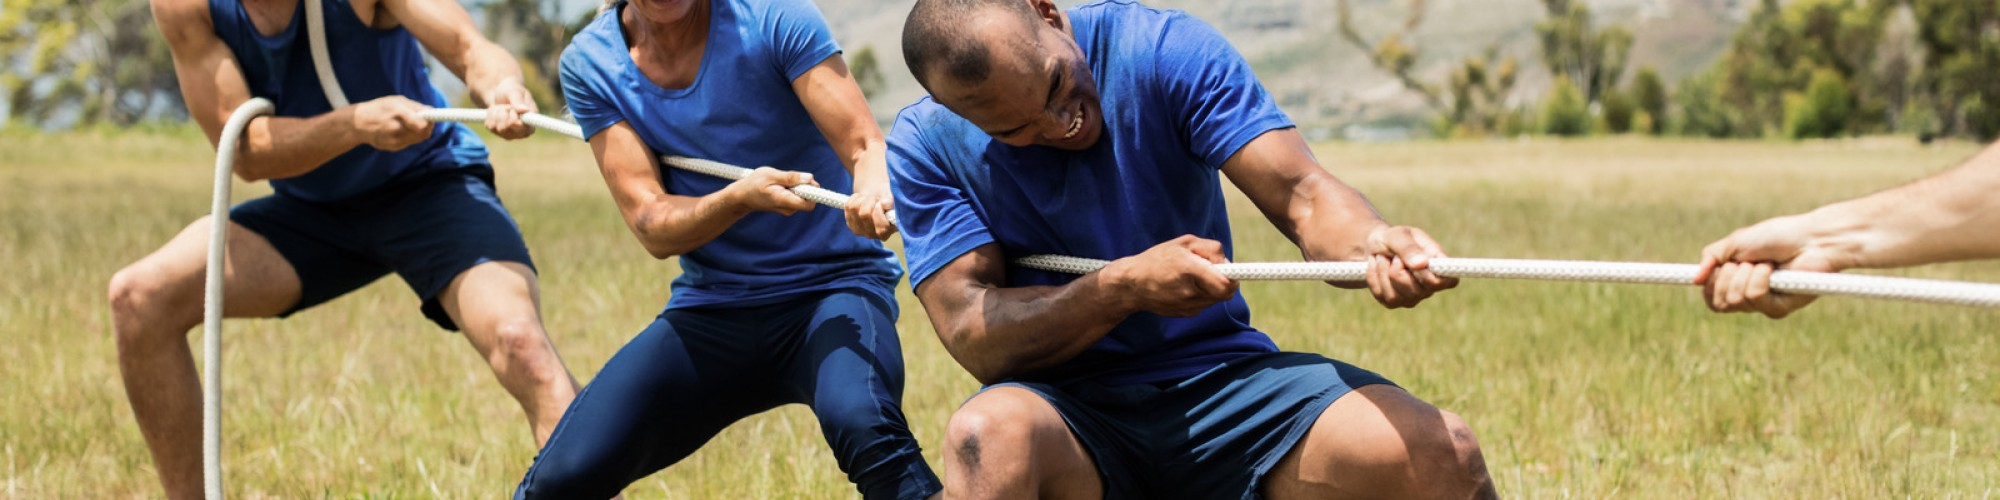 Adventures Corporate People playing tug of war during obstacle training course